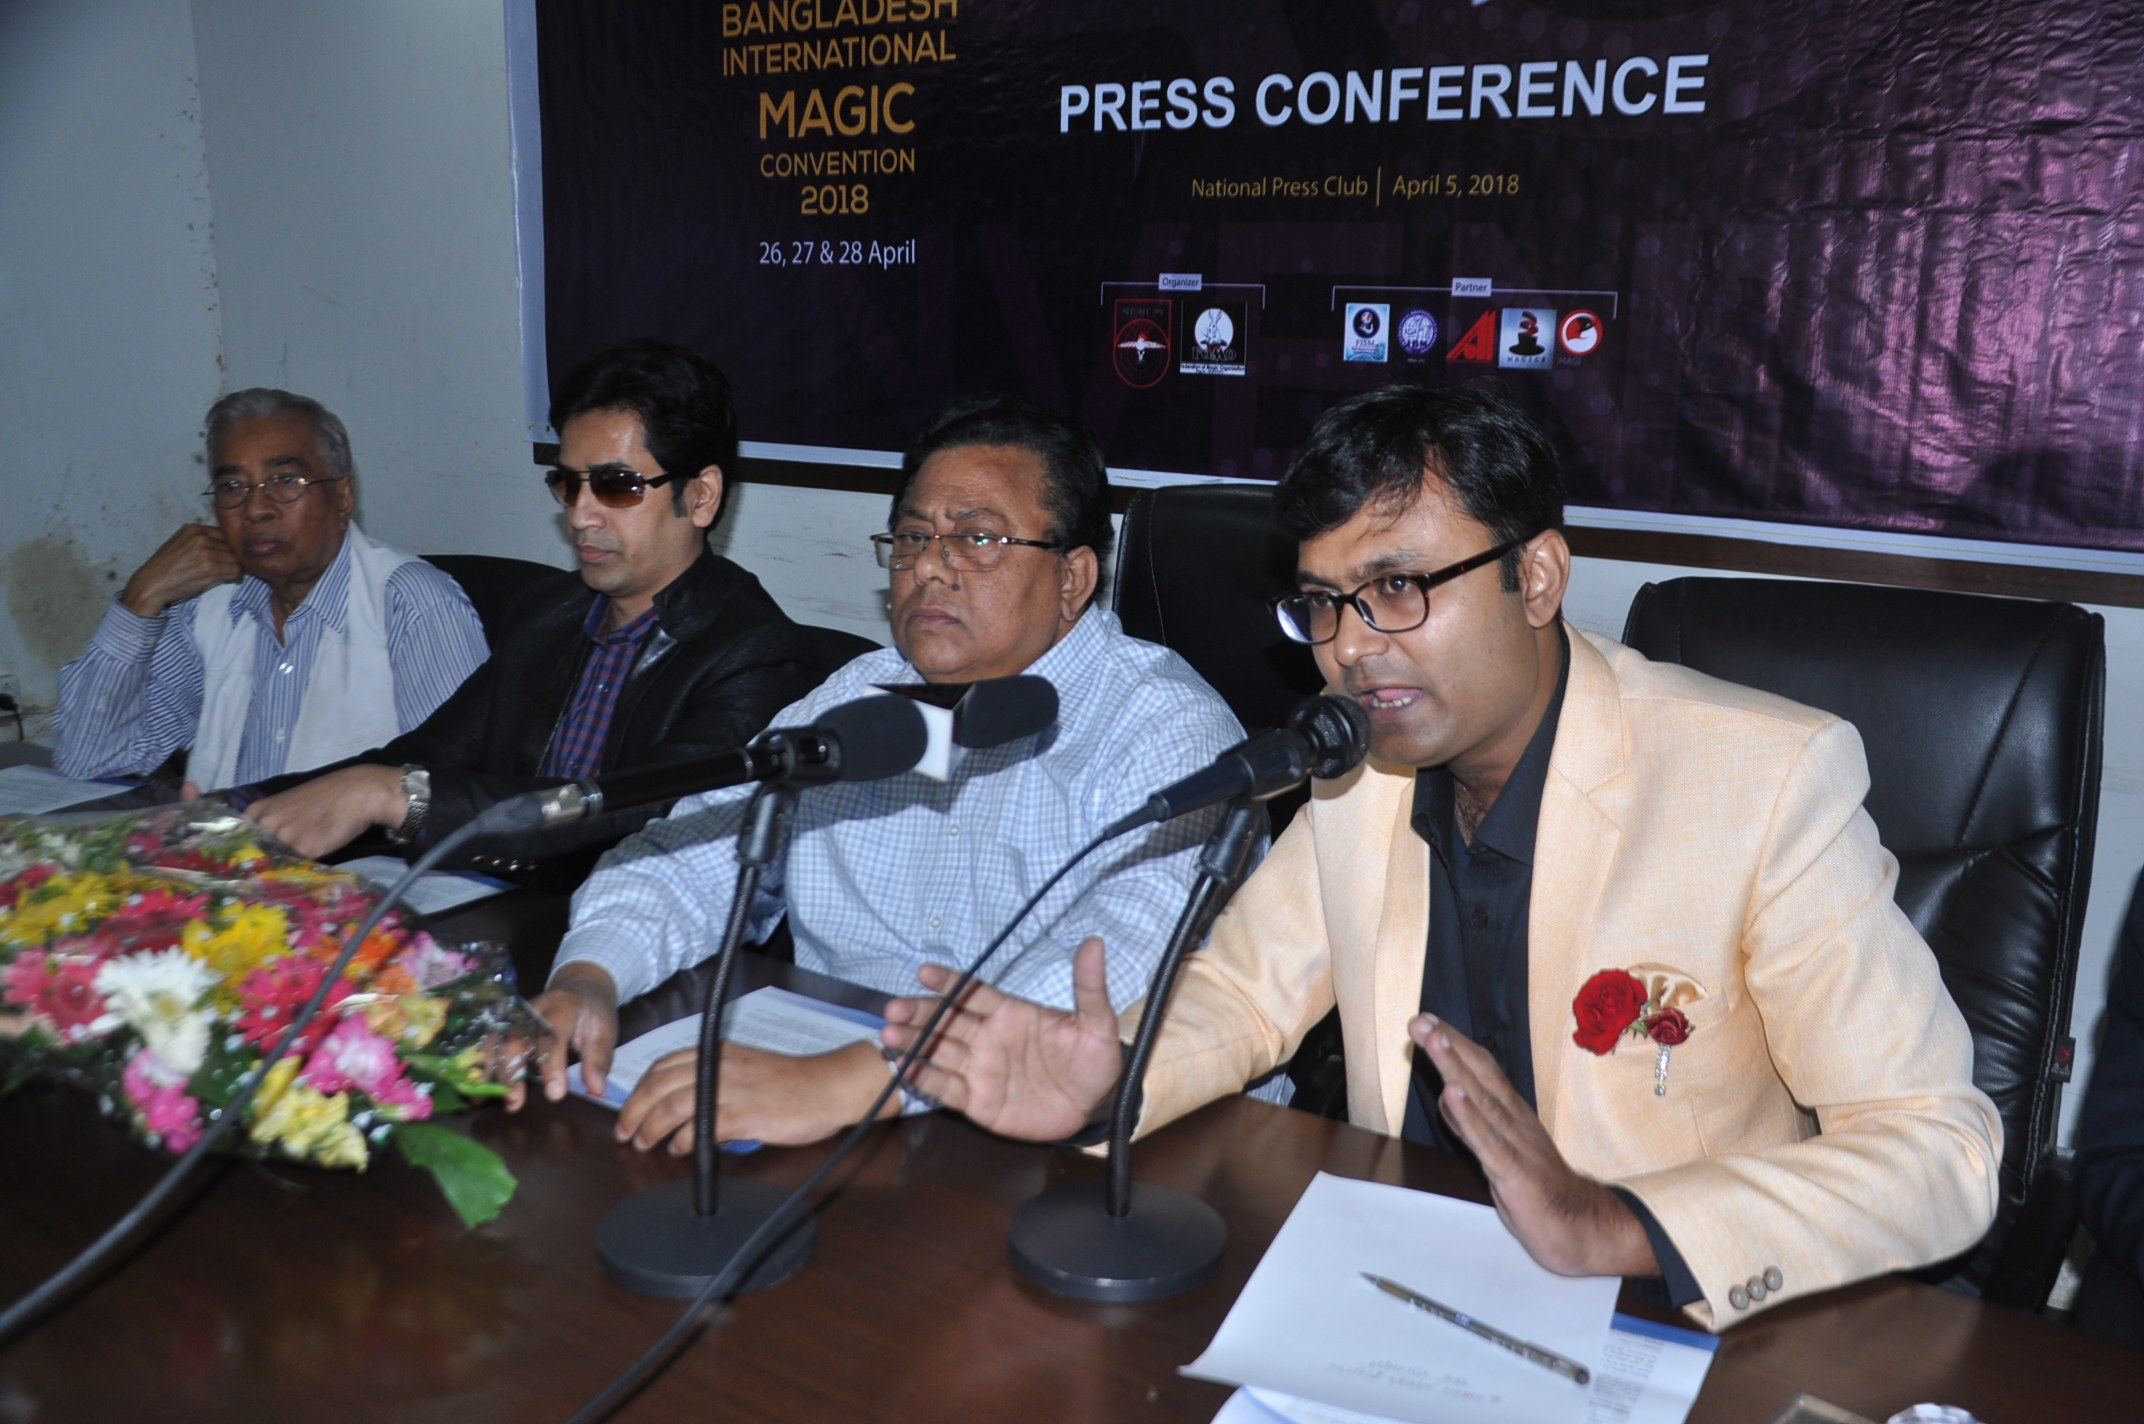 Bangladesh International Magic Convention 2018